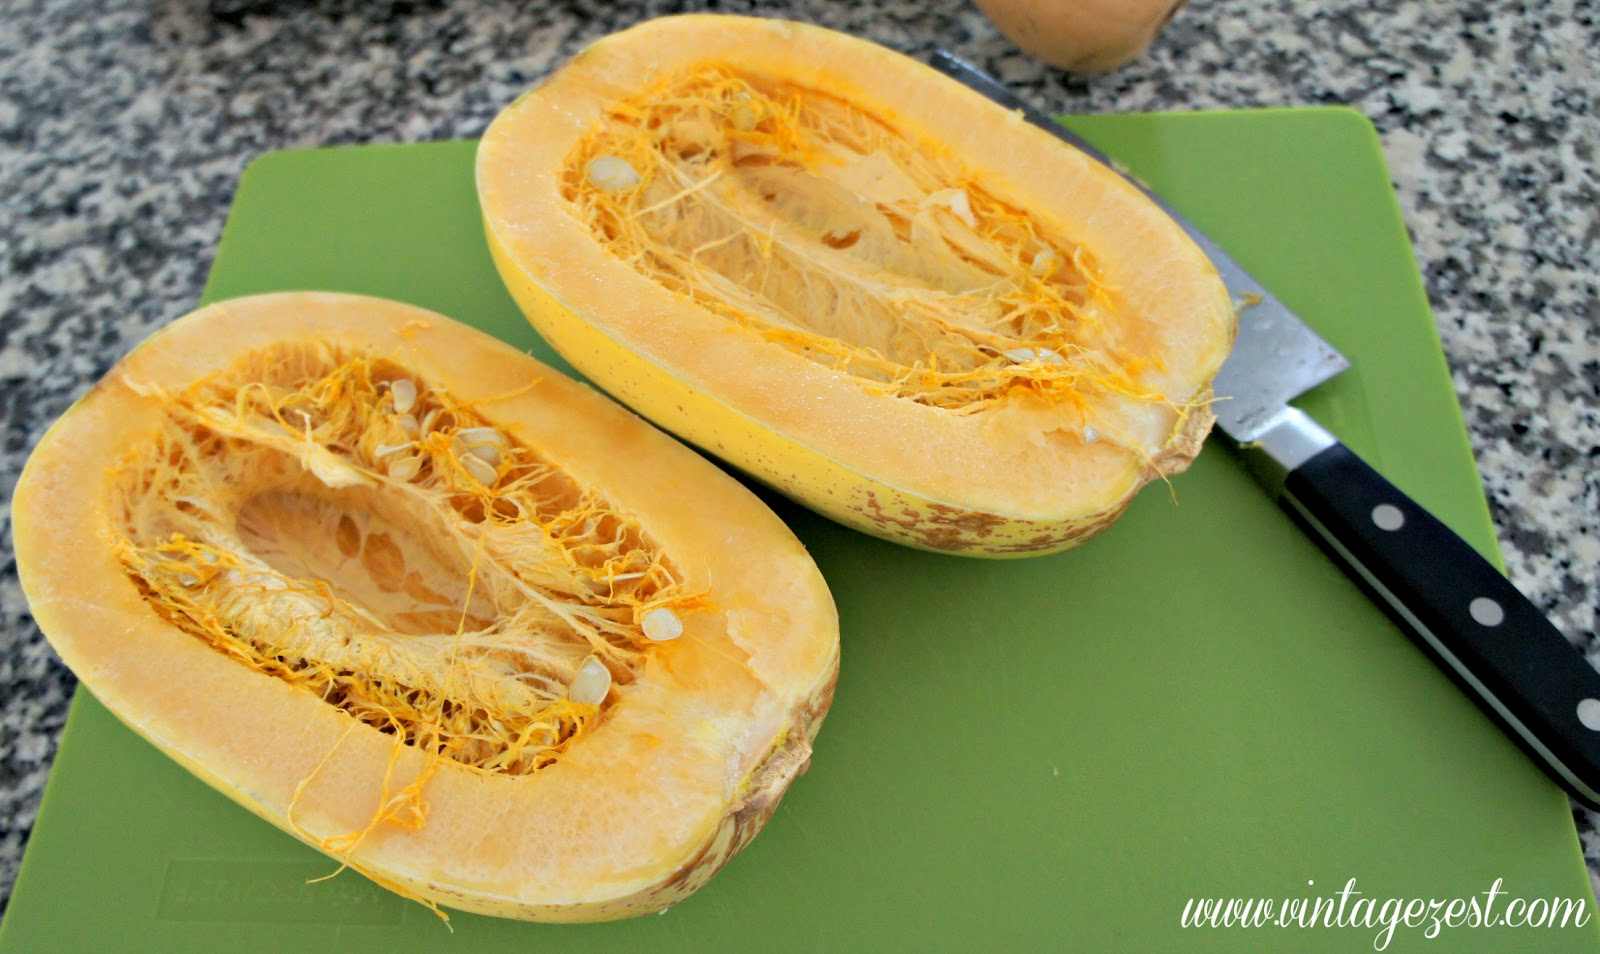 Kitchen Basics: How to Cook Spaghetti Squash on Diane's Vintage Zest!